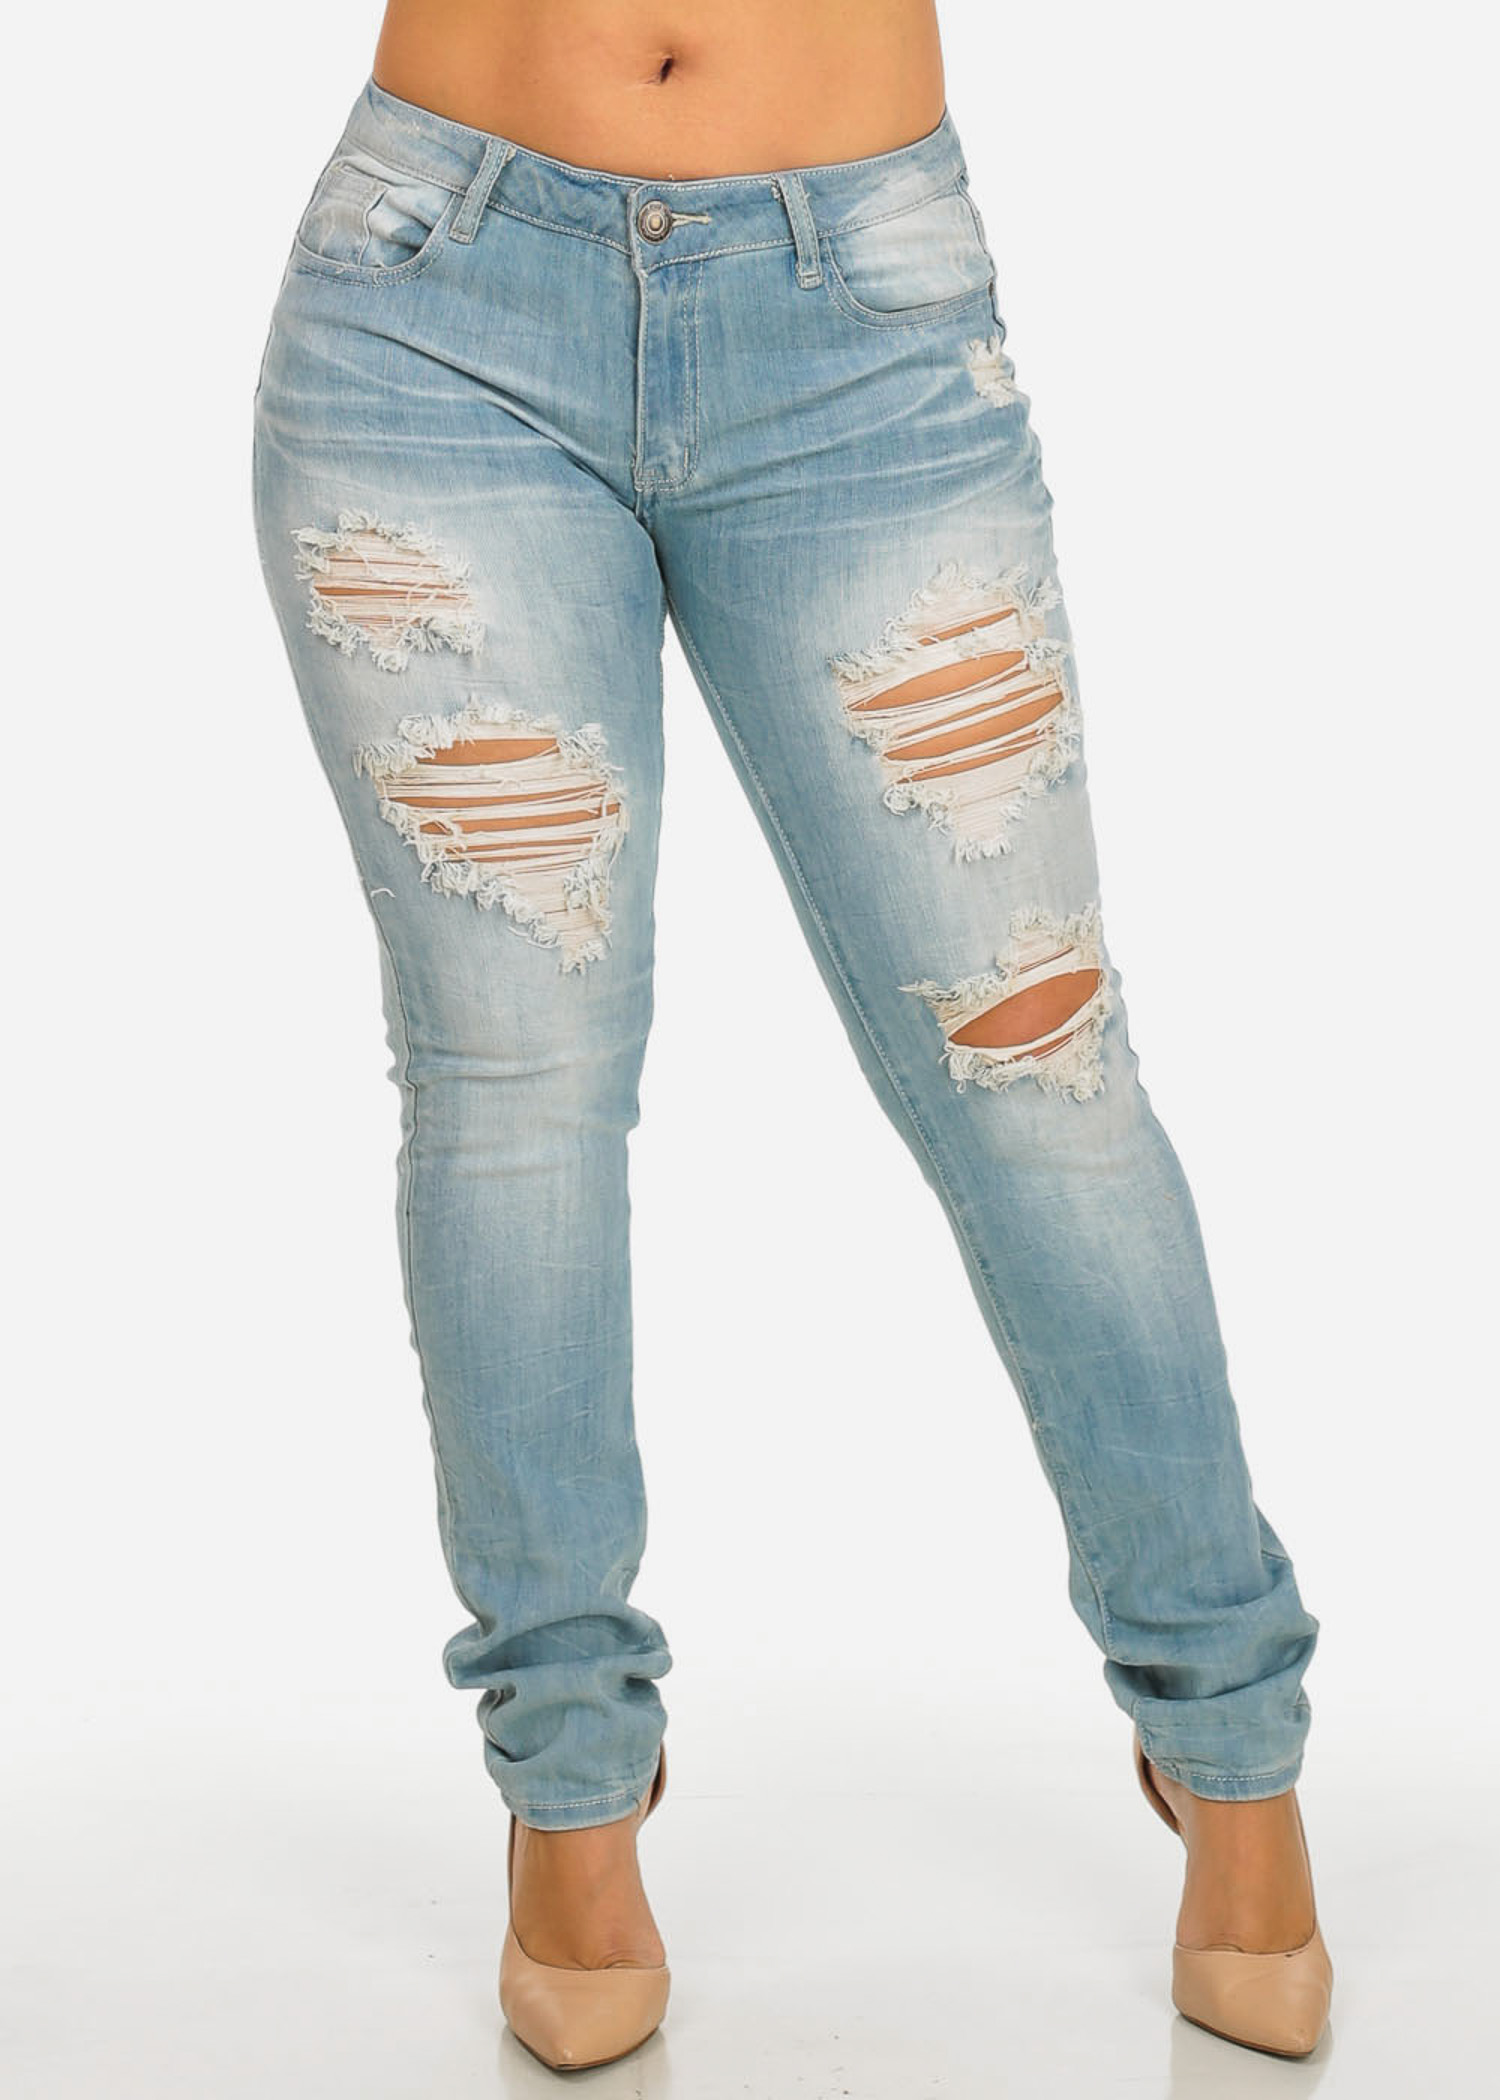 Womens Juniors Plus Size Mid Waist Light Wash Distressed Design Denim Jeans 10262J